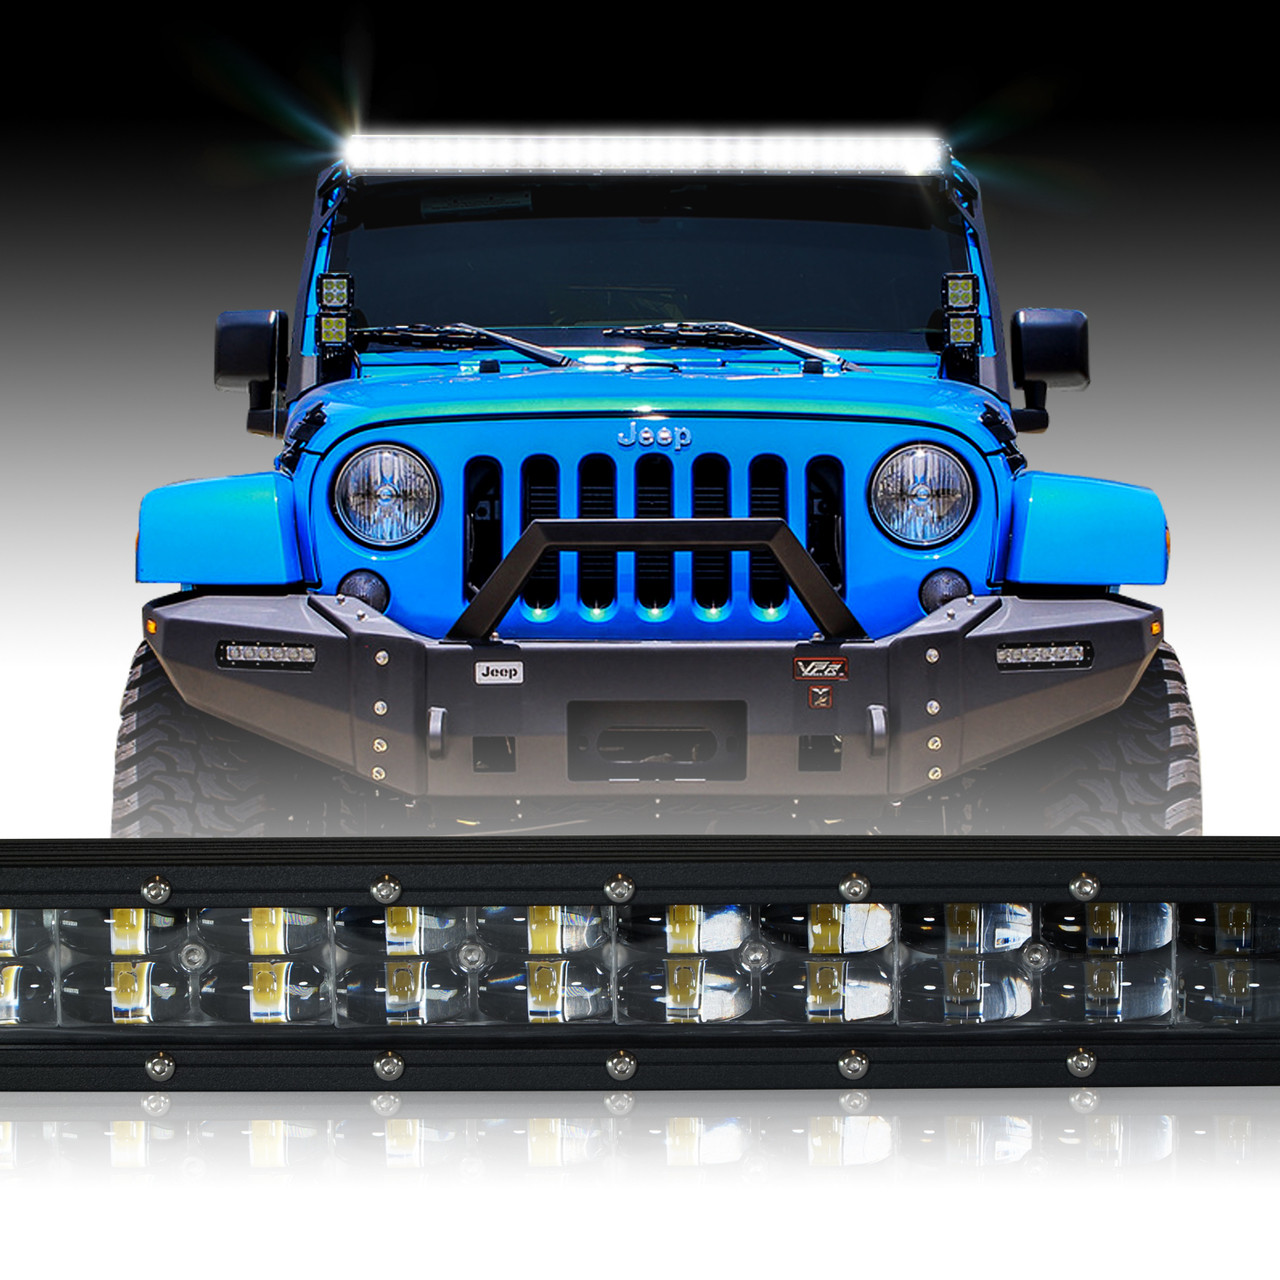 medium resolution of led light bar 288w 50 inches bracket wiring harness kit for wrangler jk 2007 2017